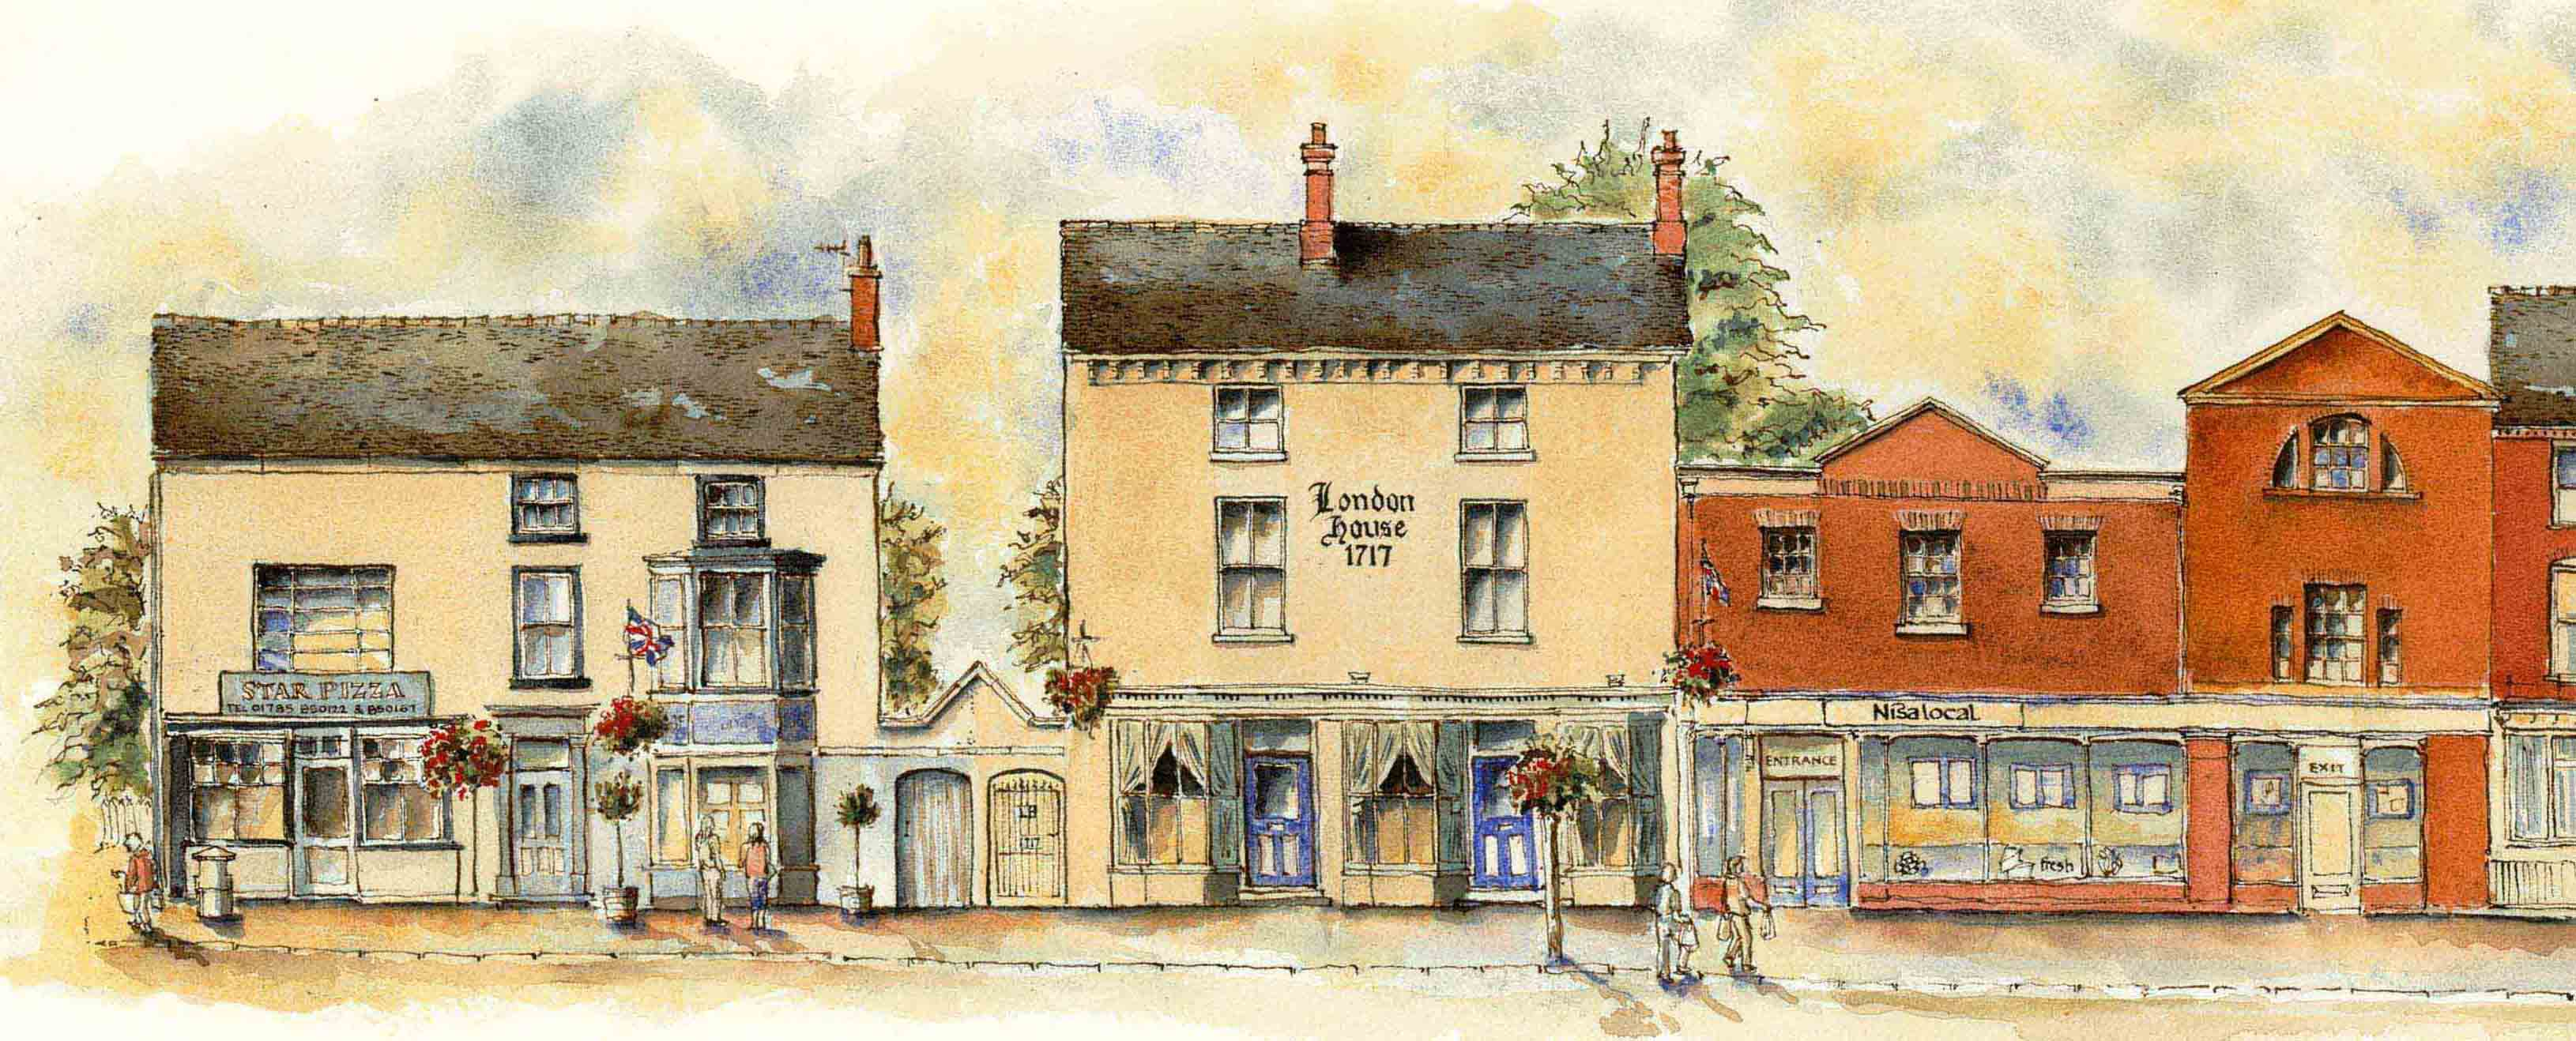 drawing of Star Pizza and London House